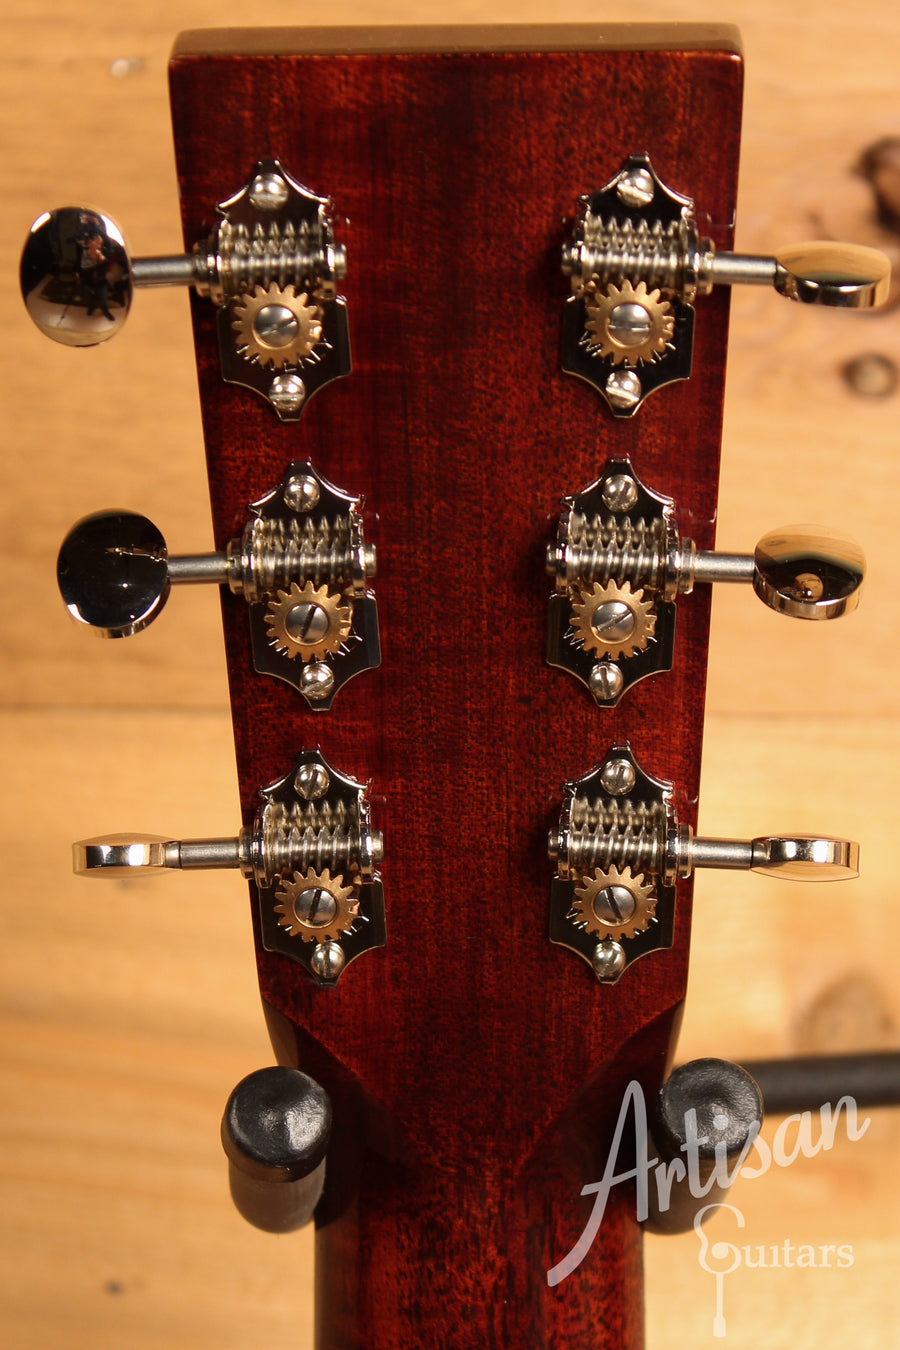 Huss and Dalton TOM M Guitar Thermo-cured Red Spruce and Mahogany Pre Owned 2015 ID-9547